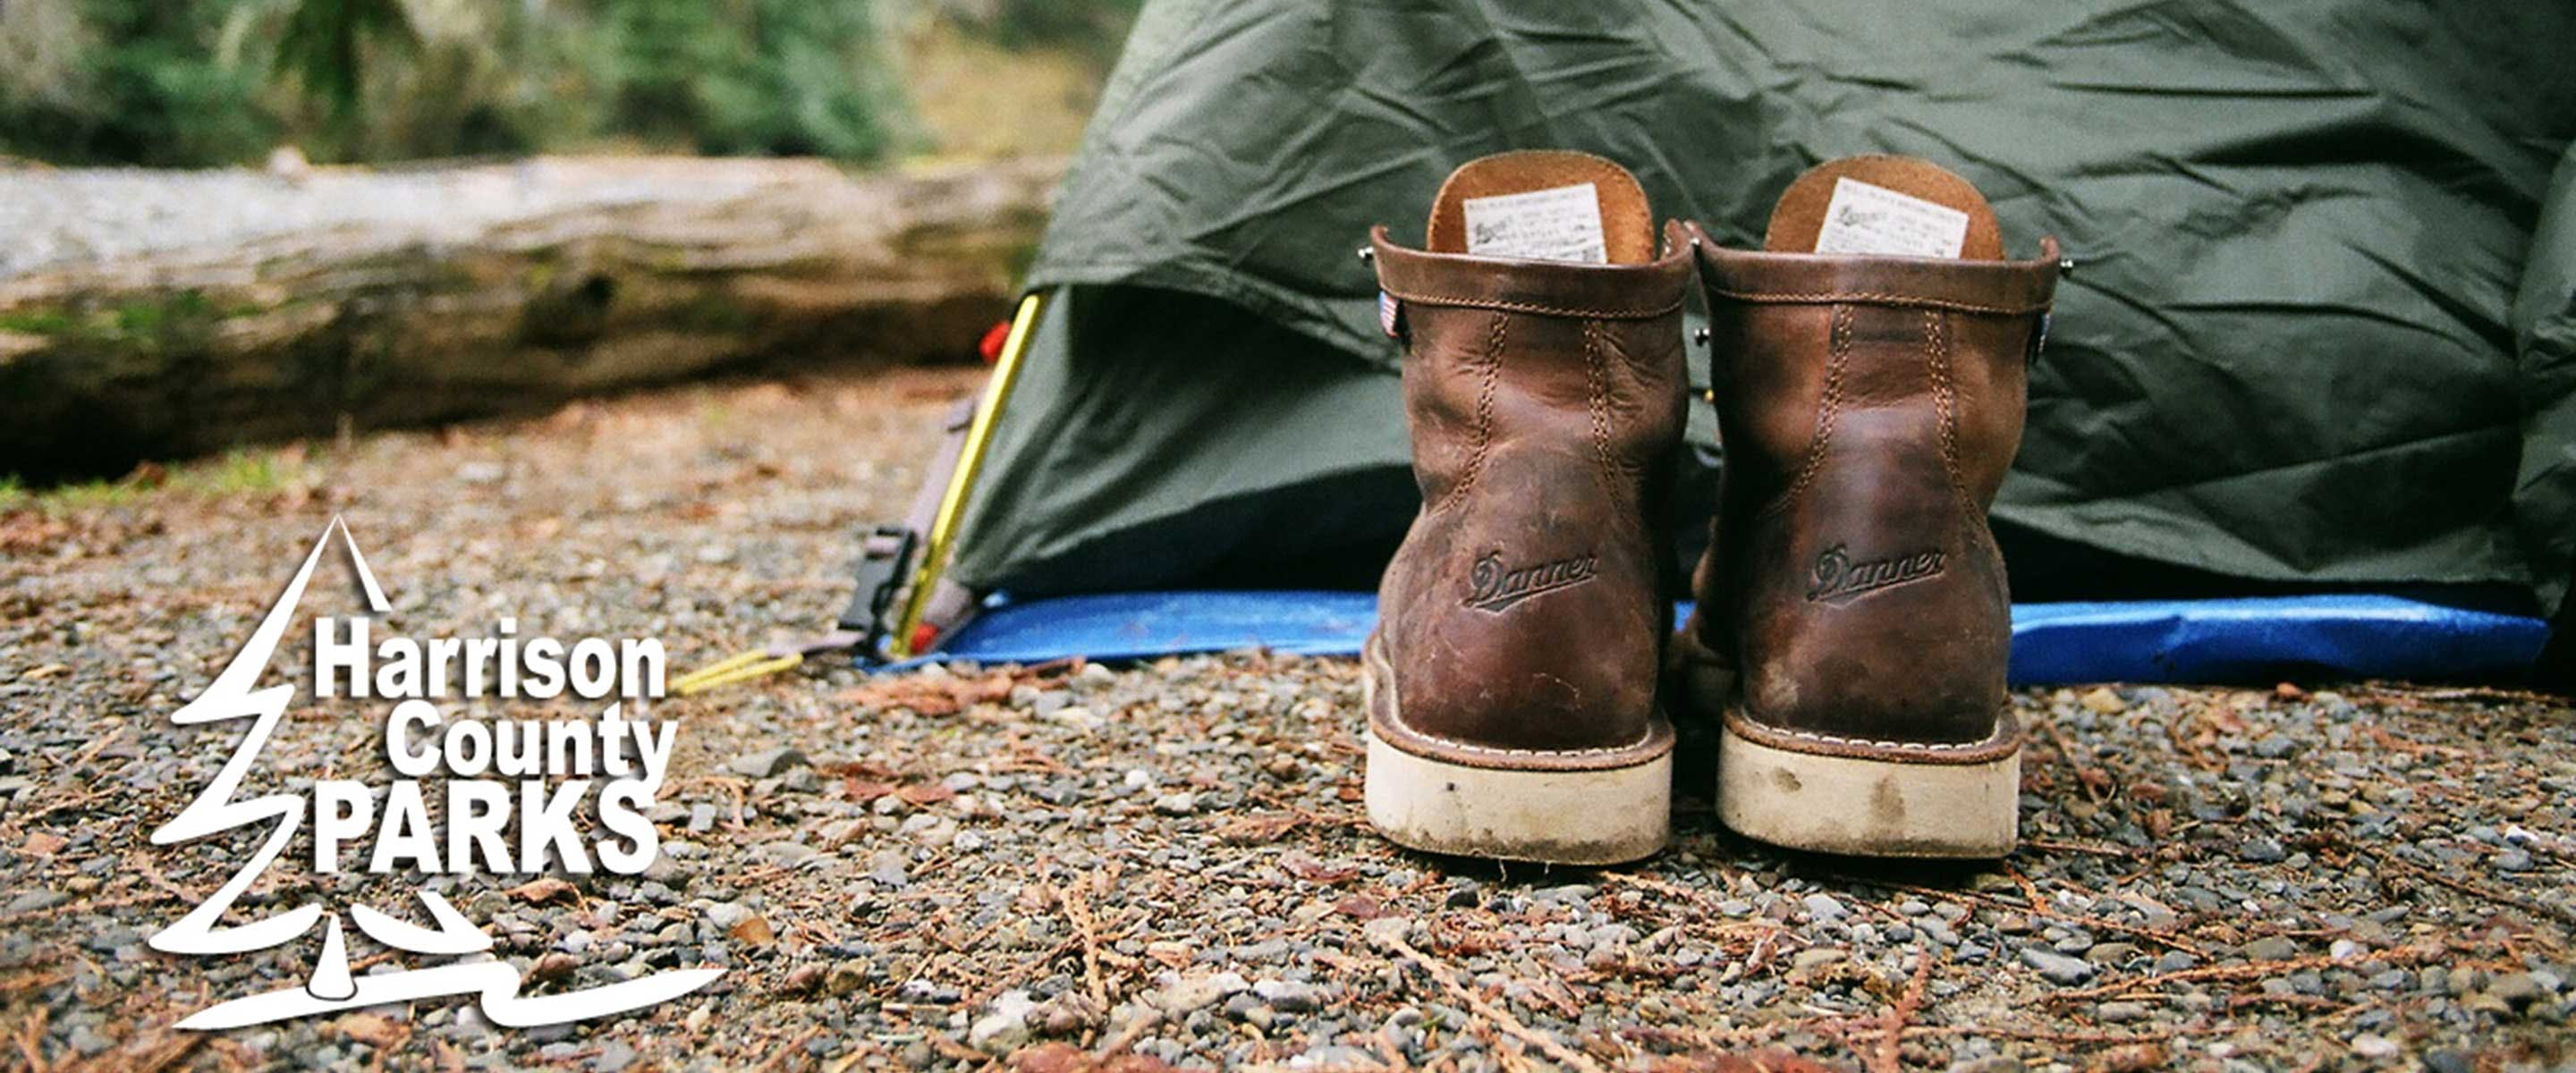 hiking boots outside a tent